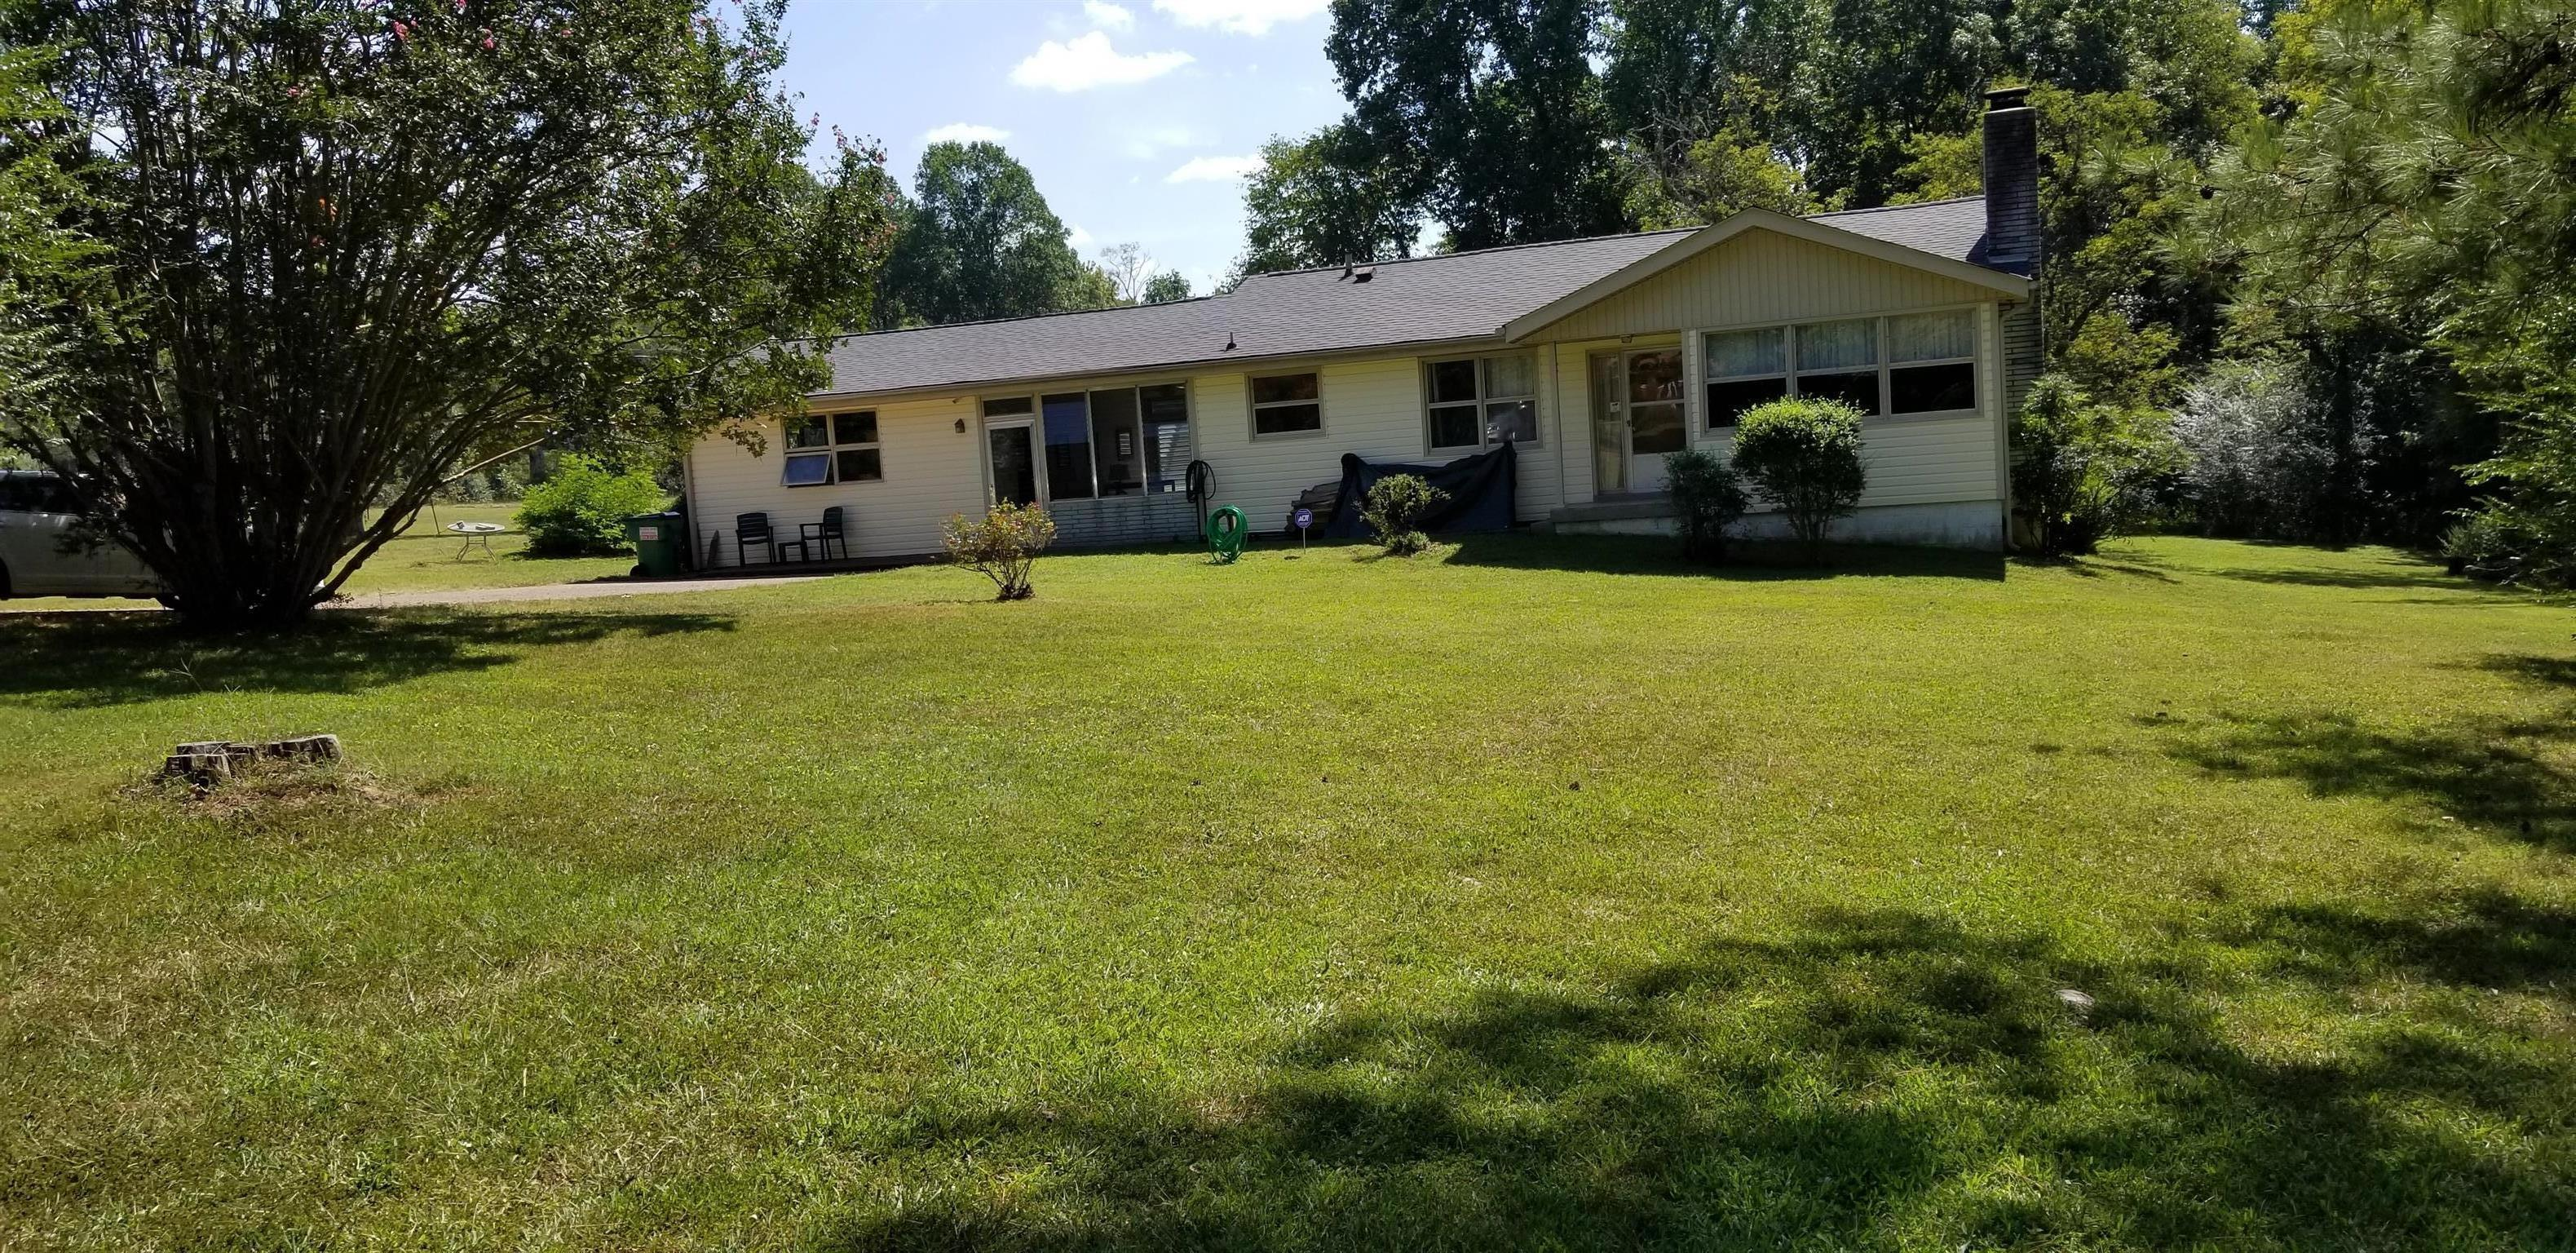 2679 Morgan Rd, Joelton, TN 37080 - Joelton, TN real estate listing